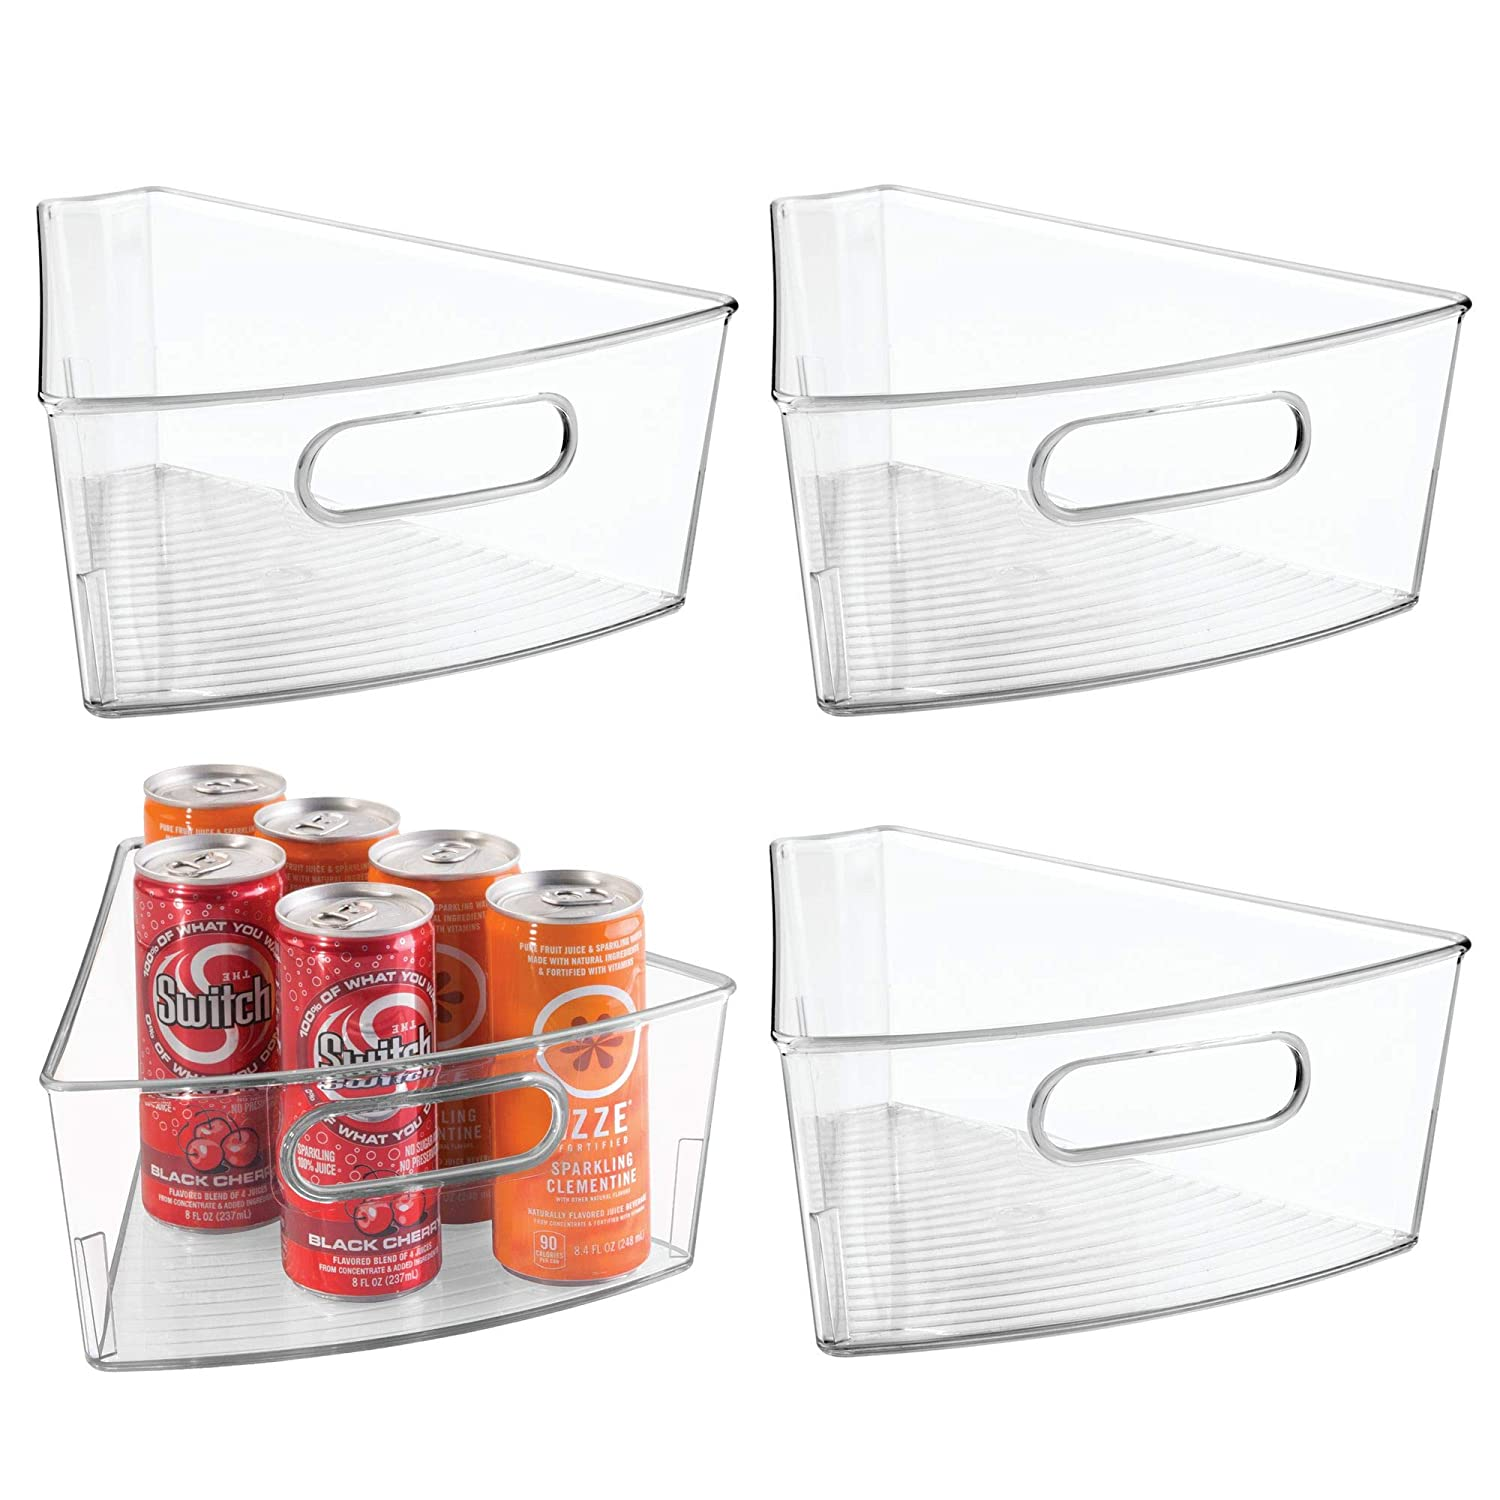 mDesign Lazy Susan Storage Bin with Handle for Kitchen Cabinets, Pantry - 1/8 Wedge, Pack of 2, Clear MetroDecor 4774MDK